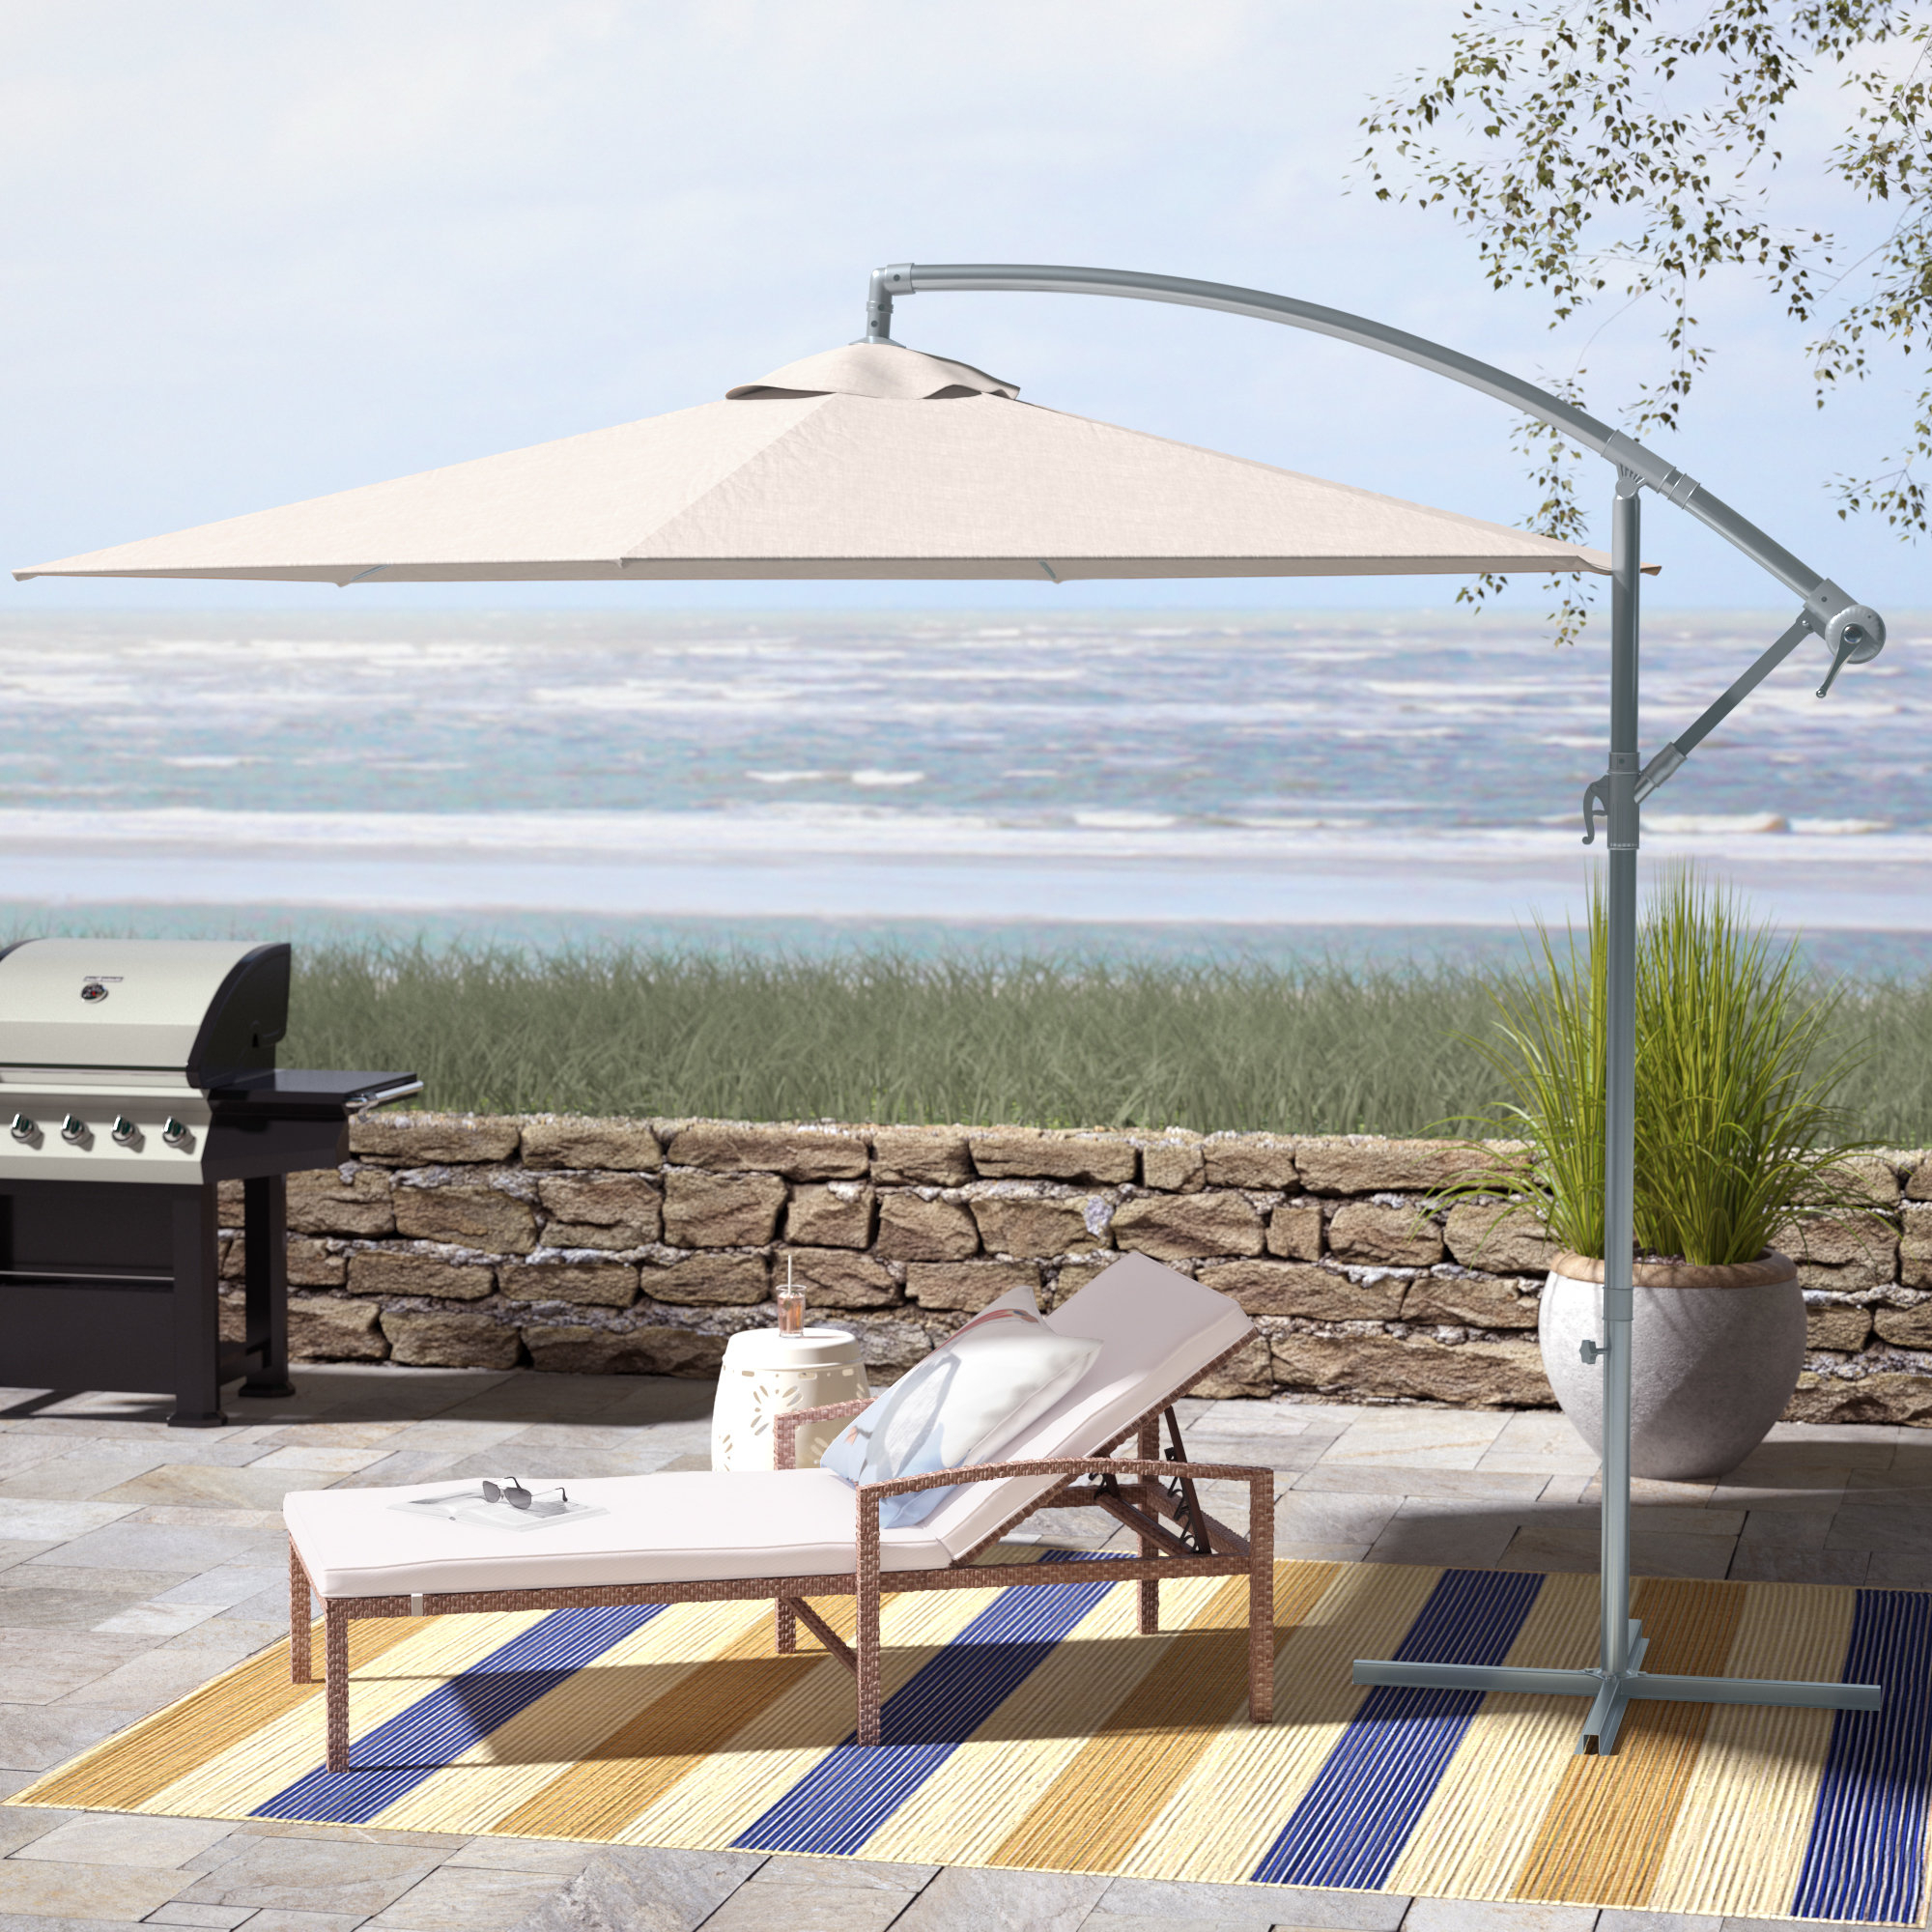 Muhammad Fullerton 10' Cantilever Umbrella Within 2020 Tallulah Sunshade Hanging Outdoor Cantilever Umbrellas (Gallery 3 of 20)